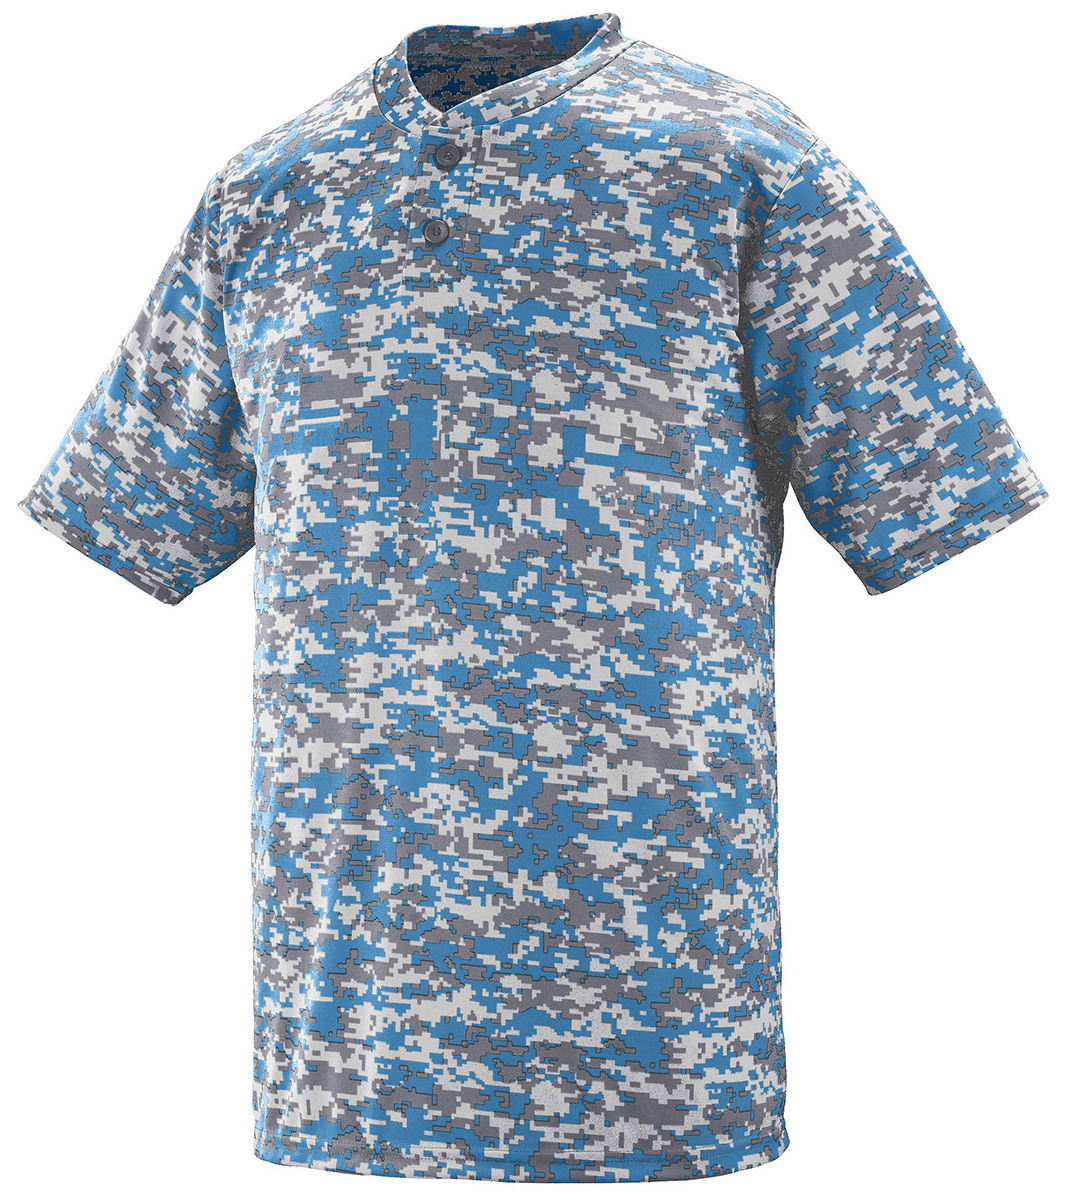 bad74ad3a81e Augusta Sportswear Mens Digi Camo Wicking Two-button Jersey 2xl Columbia  Blue. About this product. Picture 1 of 3  Picture 2 of 3  Picture 3 of 3